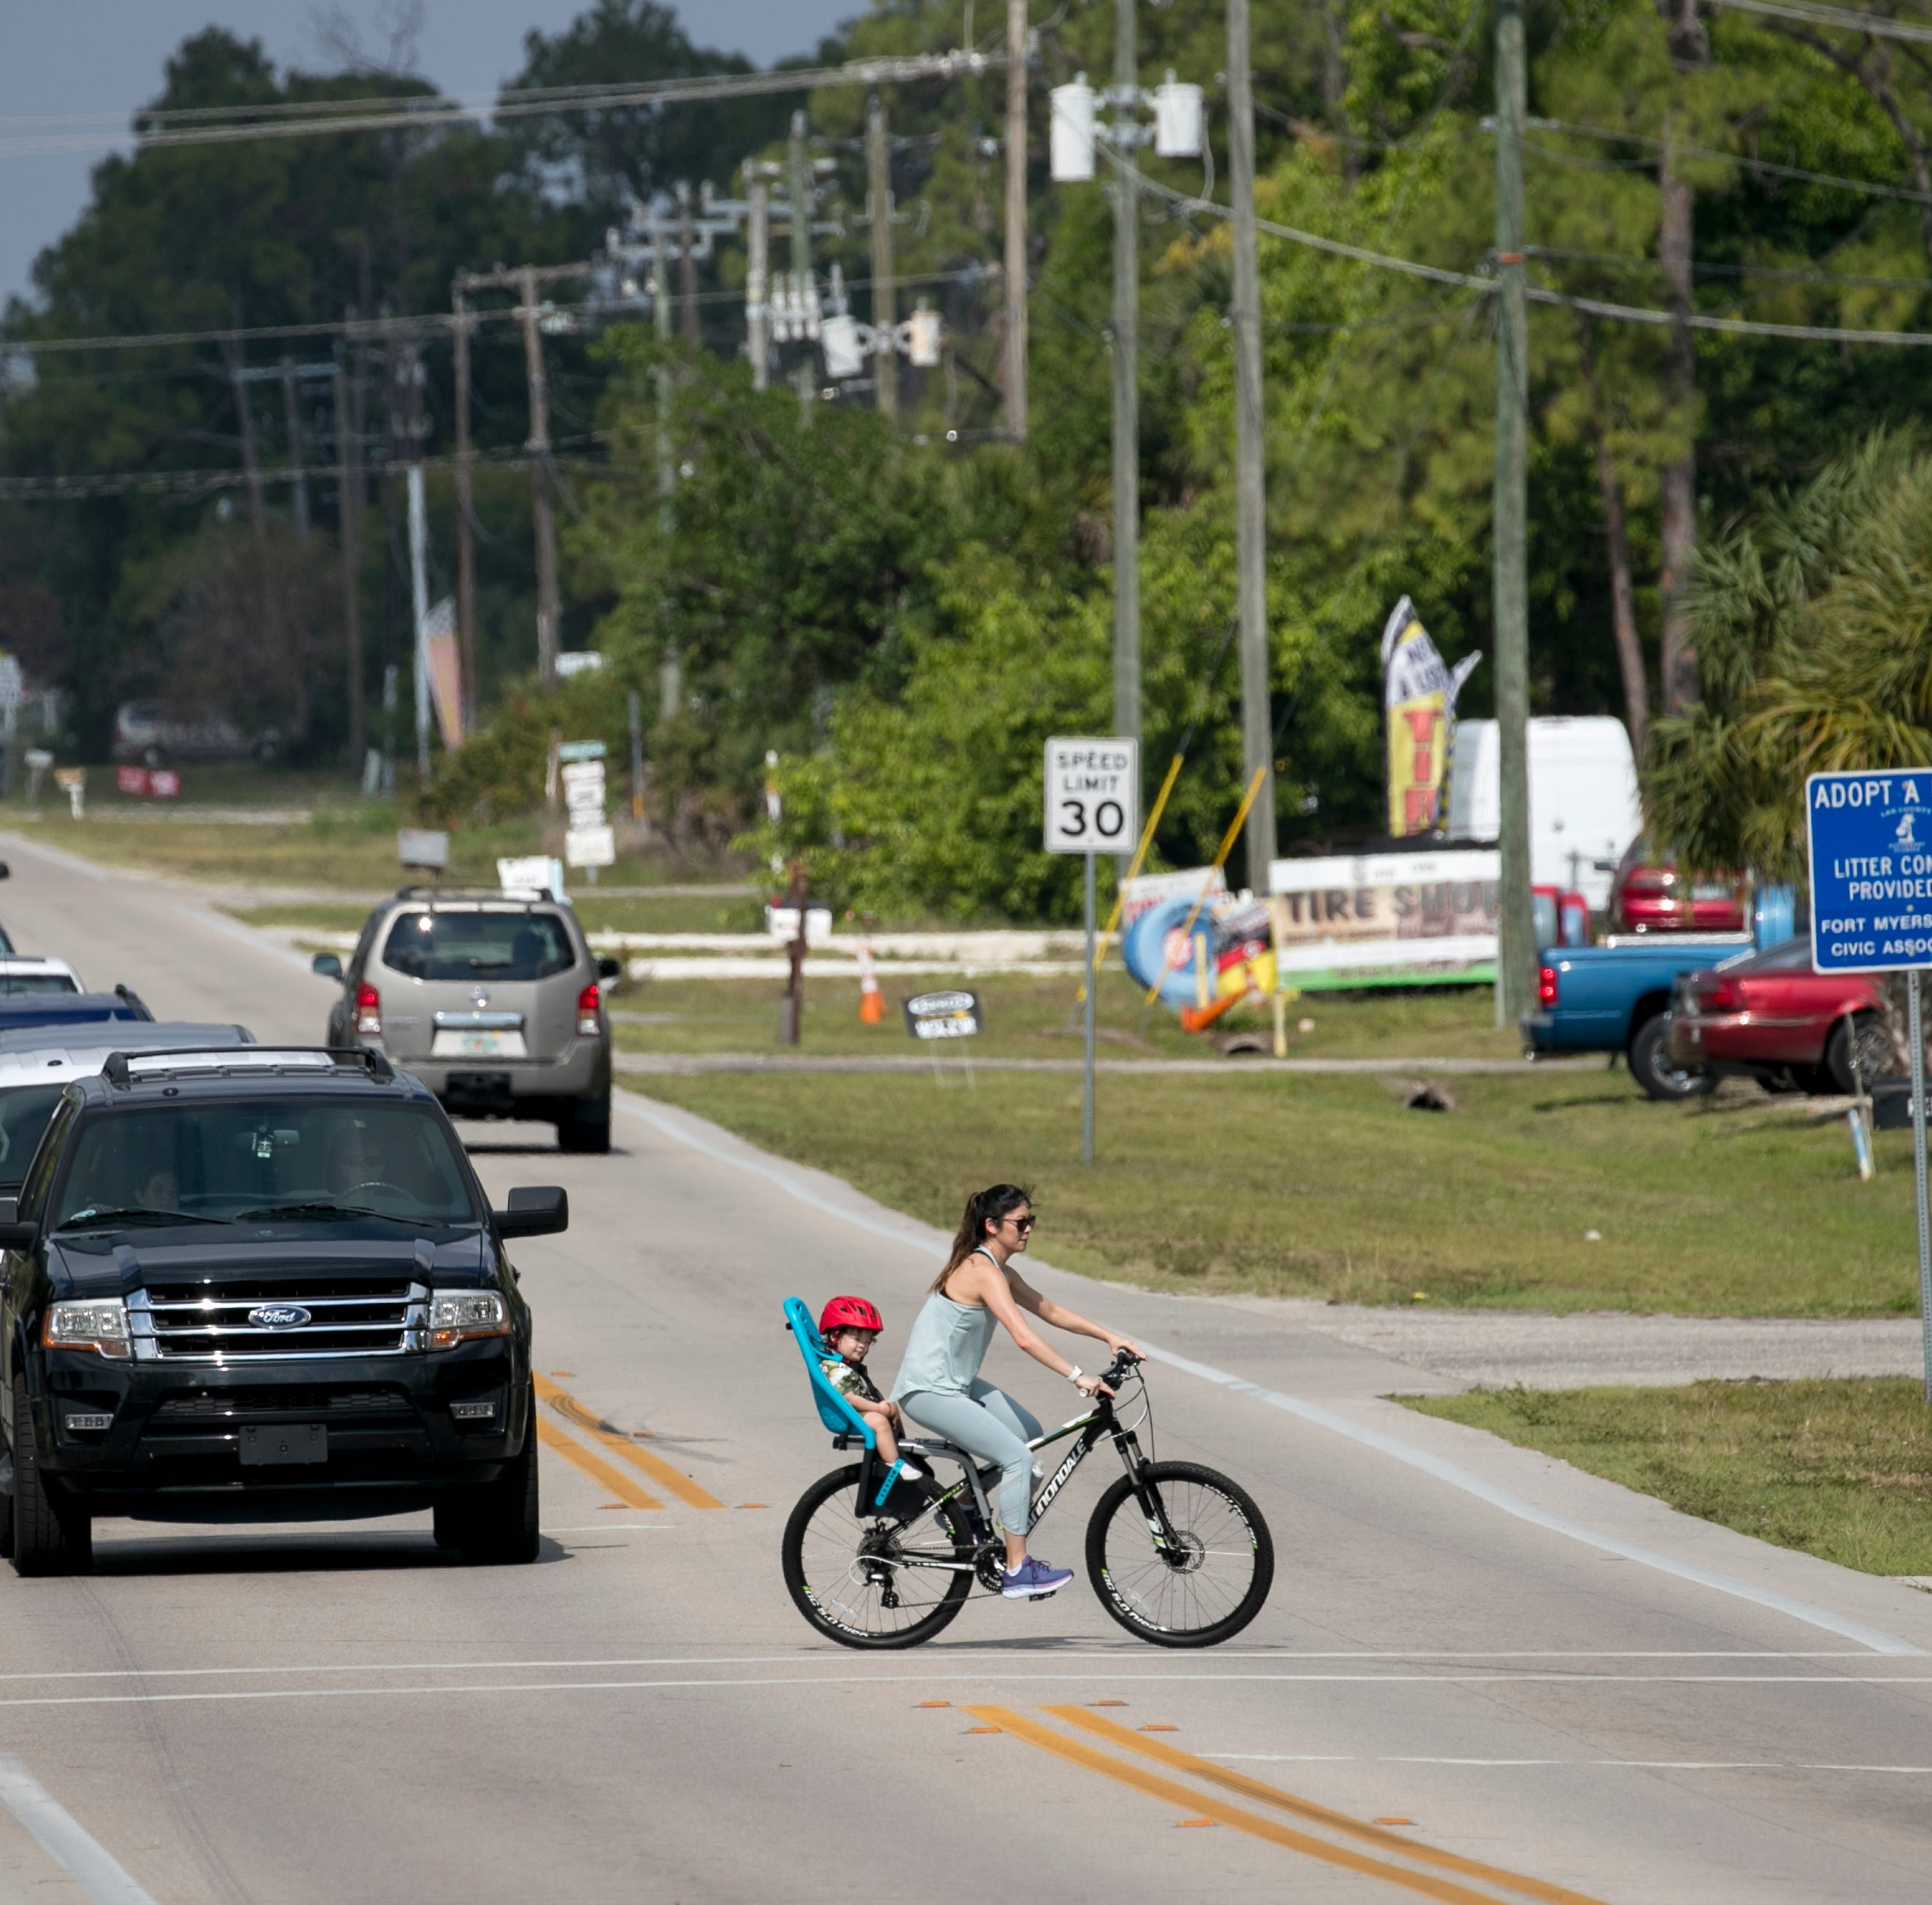 After tourist season traffic jams, commissioners eye new traffic fixes